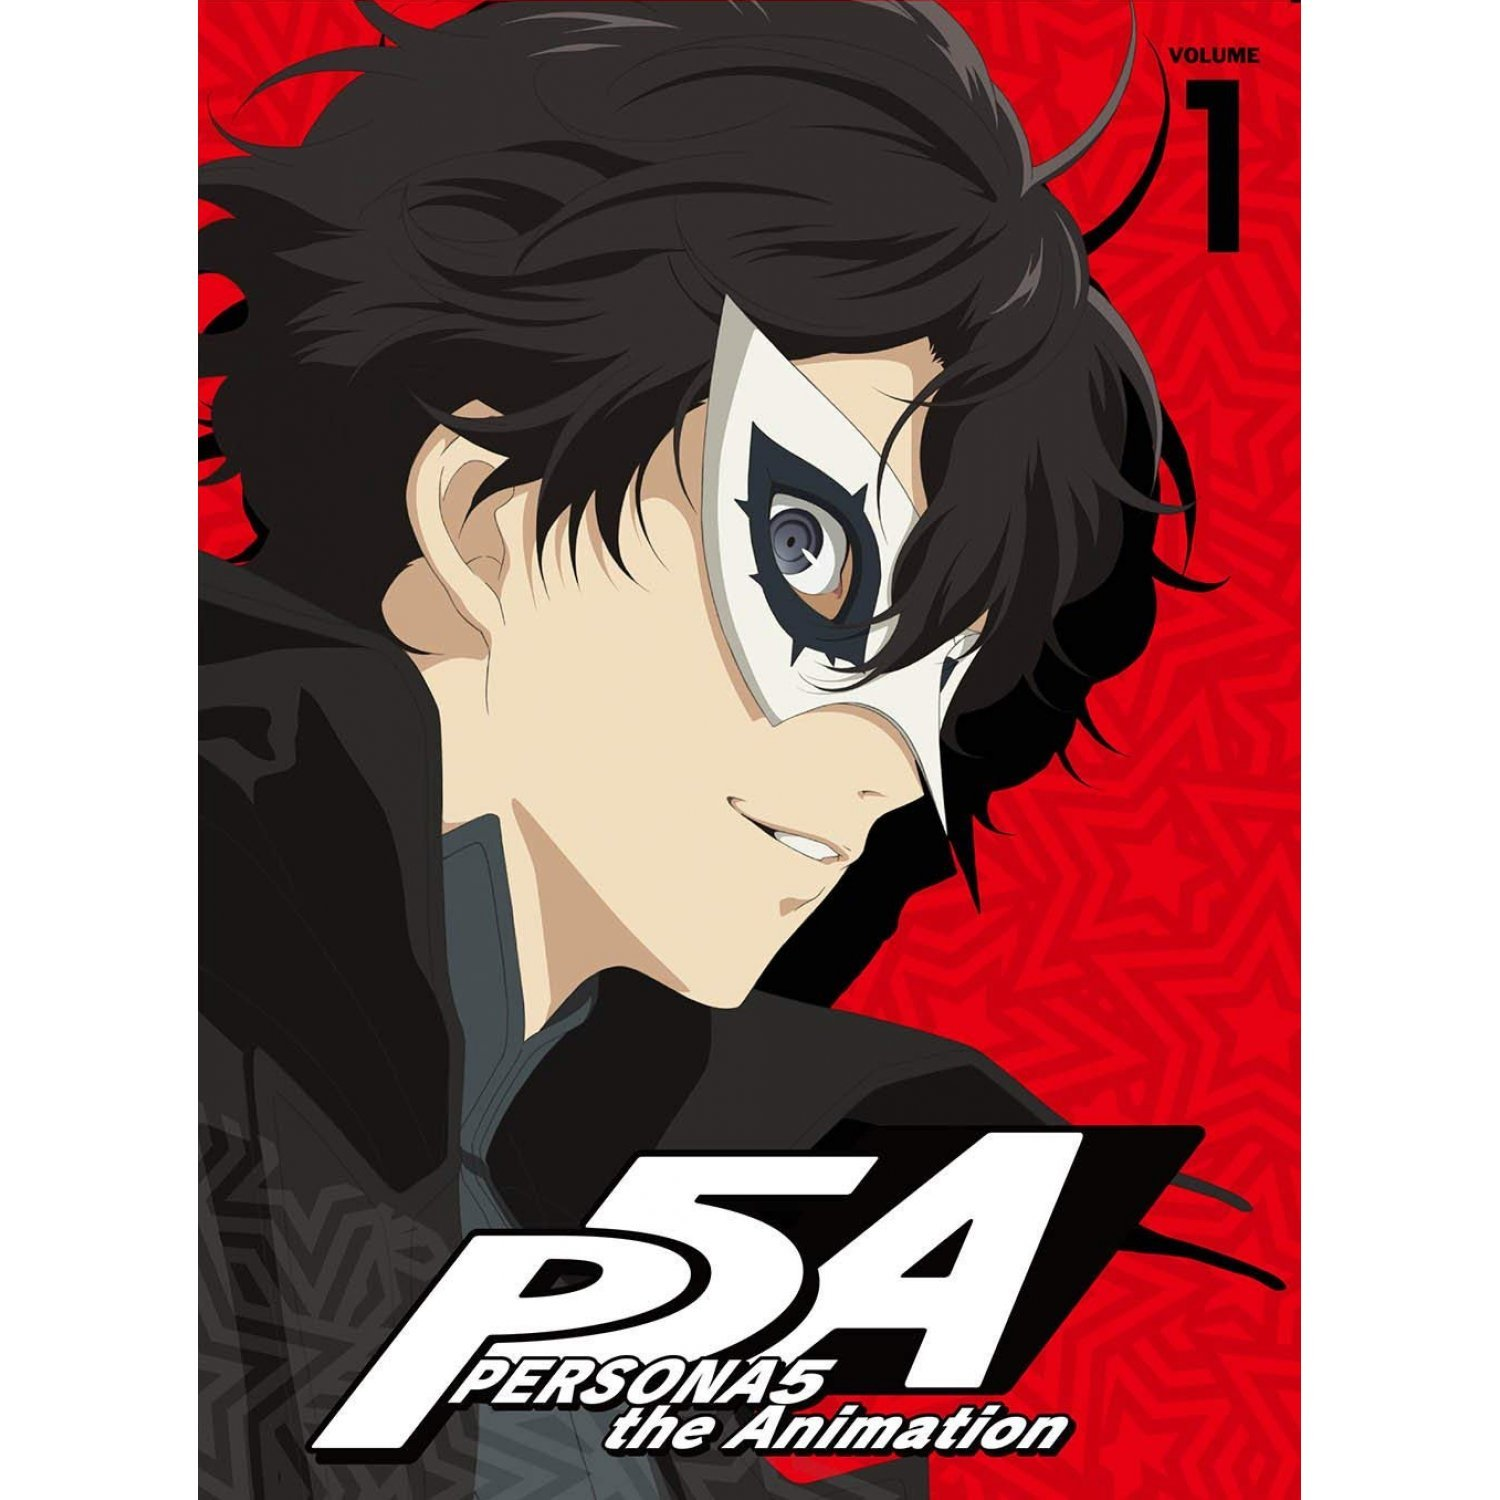 Persona 5 The Animation Vol 1 [Limited Edition]